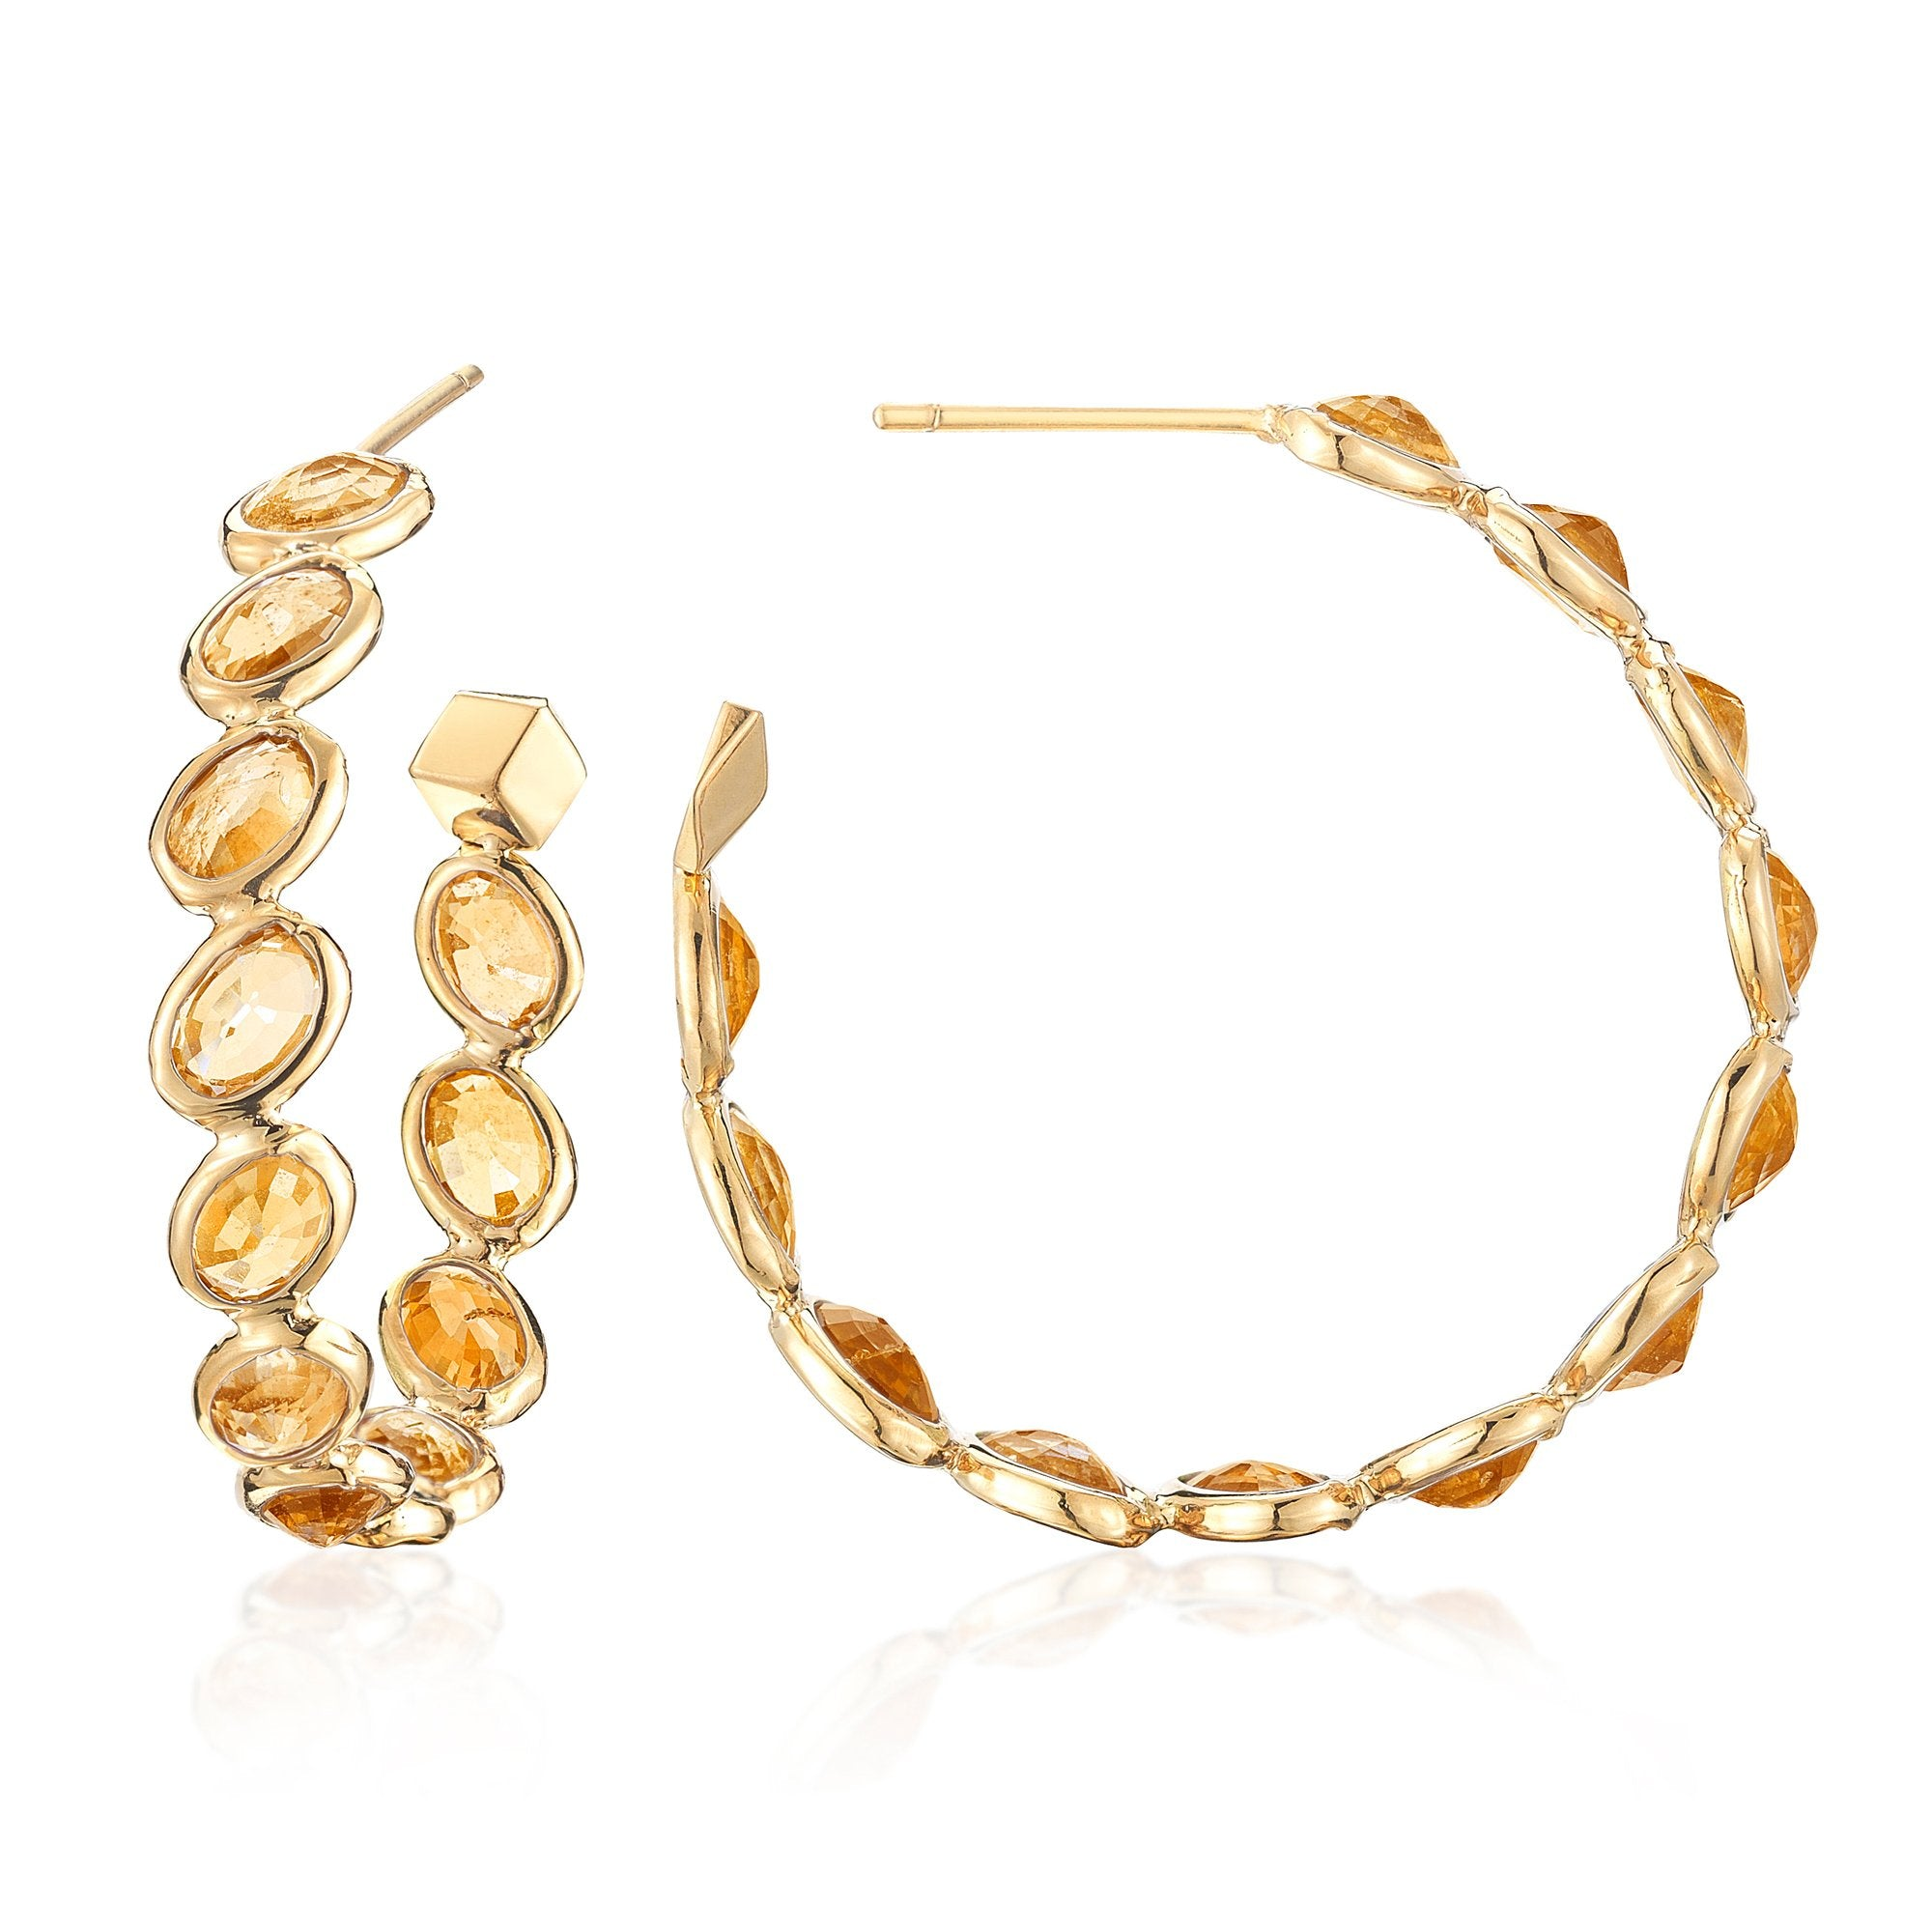 Orange Sapphire 'Ombre' Hoop Earrings, Medium - Paolo Costagli - 1